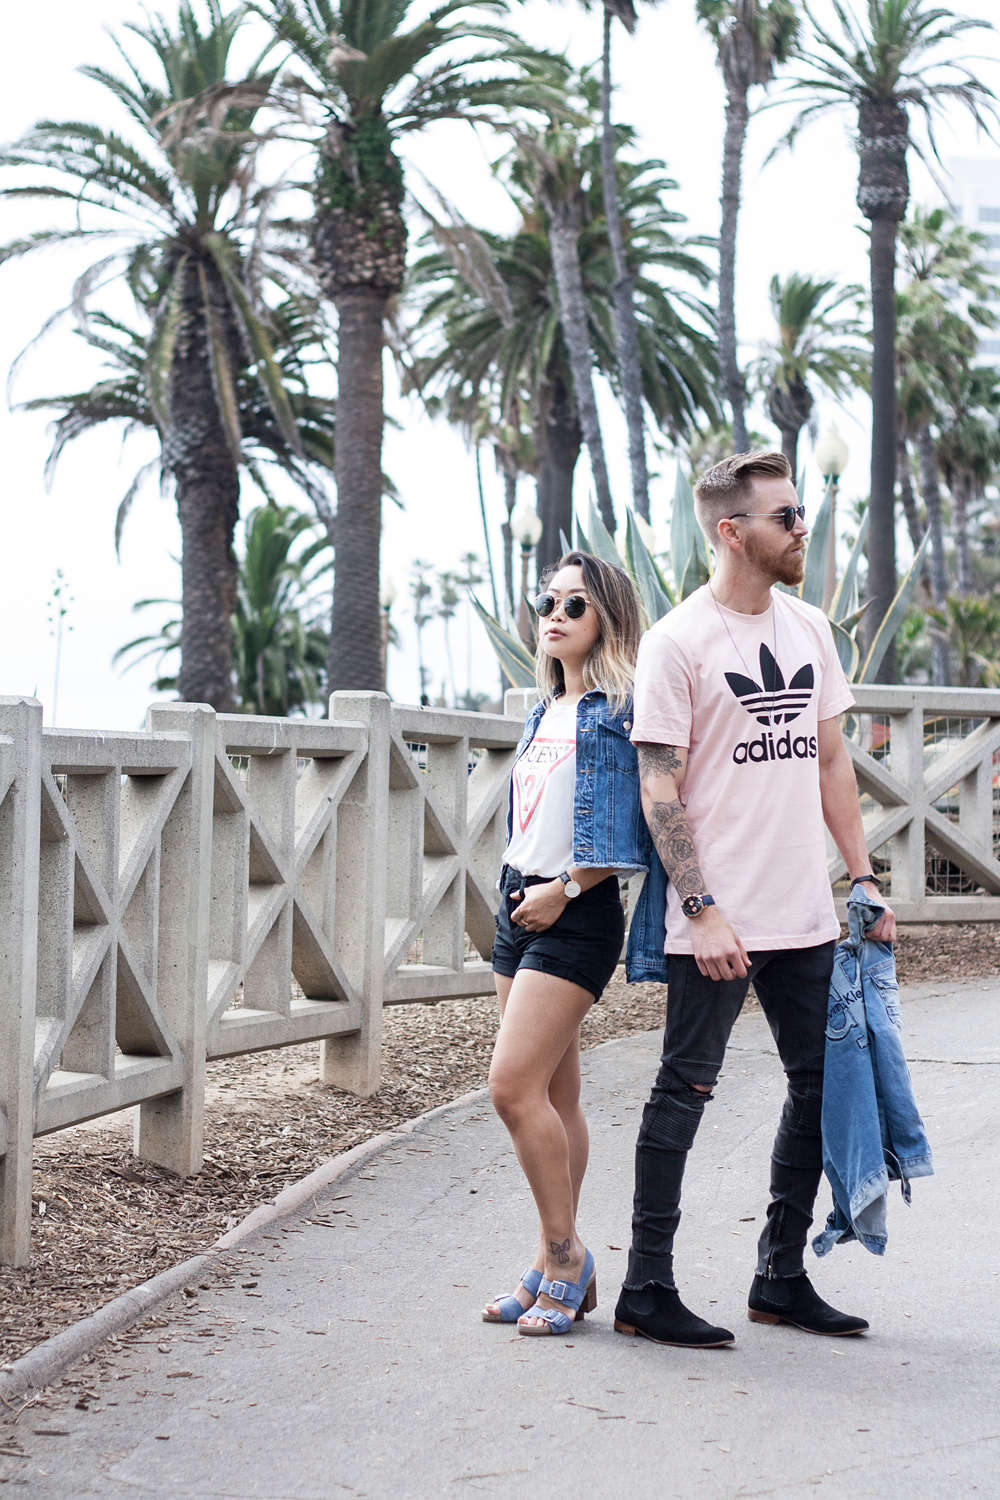 07pacsun-hisandhers-denim-guess-adidas-santamonica-la-travel-fashion-style